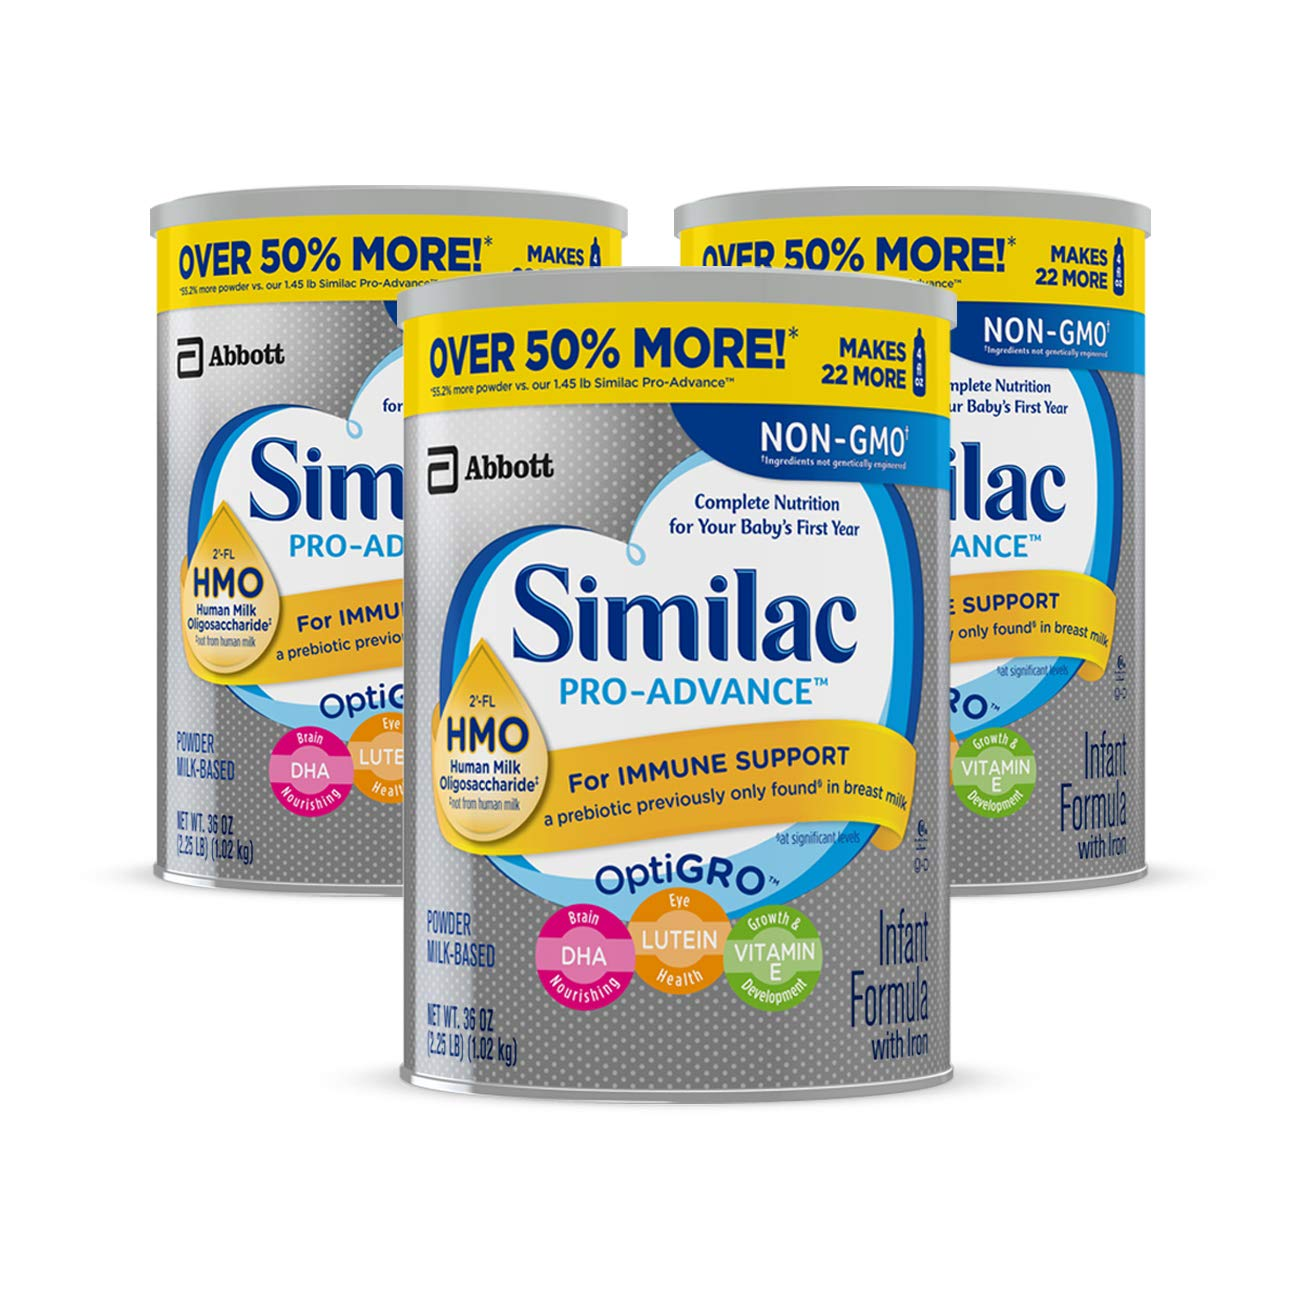 Similac Pro-Advance Non-GMO Infant Formula with Iron, with 2'-FL HMO, for Immune Support, Baby Formula, Powder, 36 oz, 3 Count (One-Month Supply) with 2'-FL HMO Abbott Nutrition 070074668321